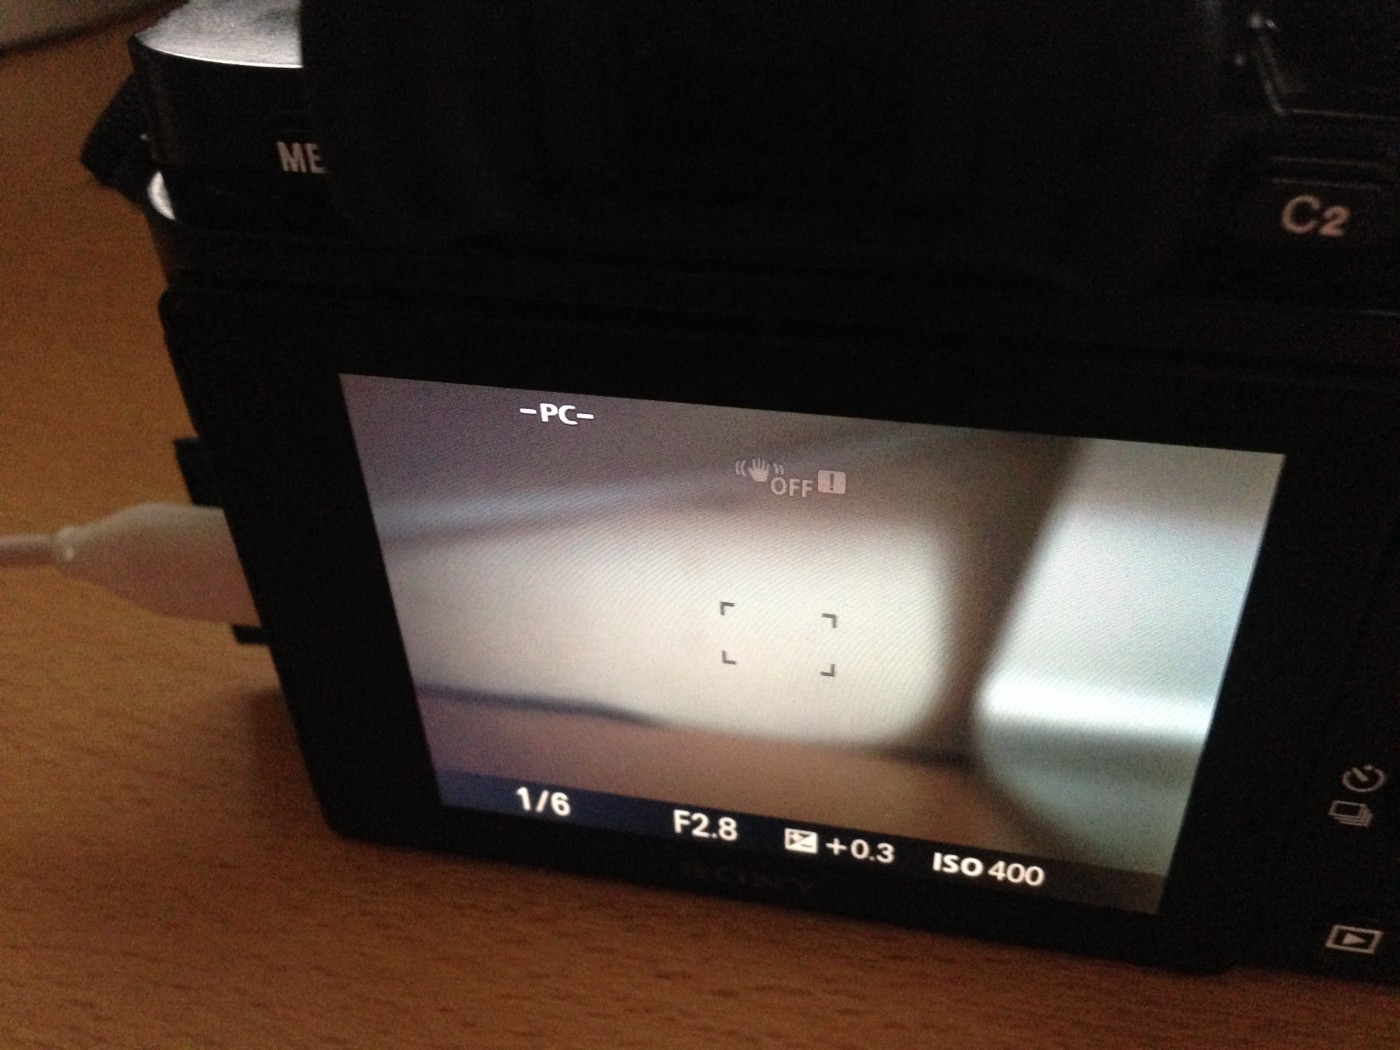 How to set-up a live view tether for your Sony Camera